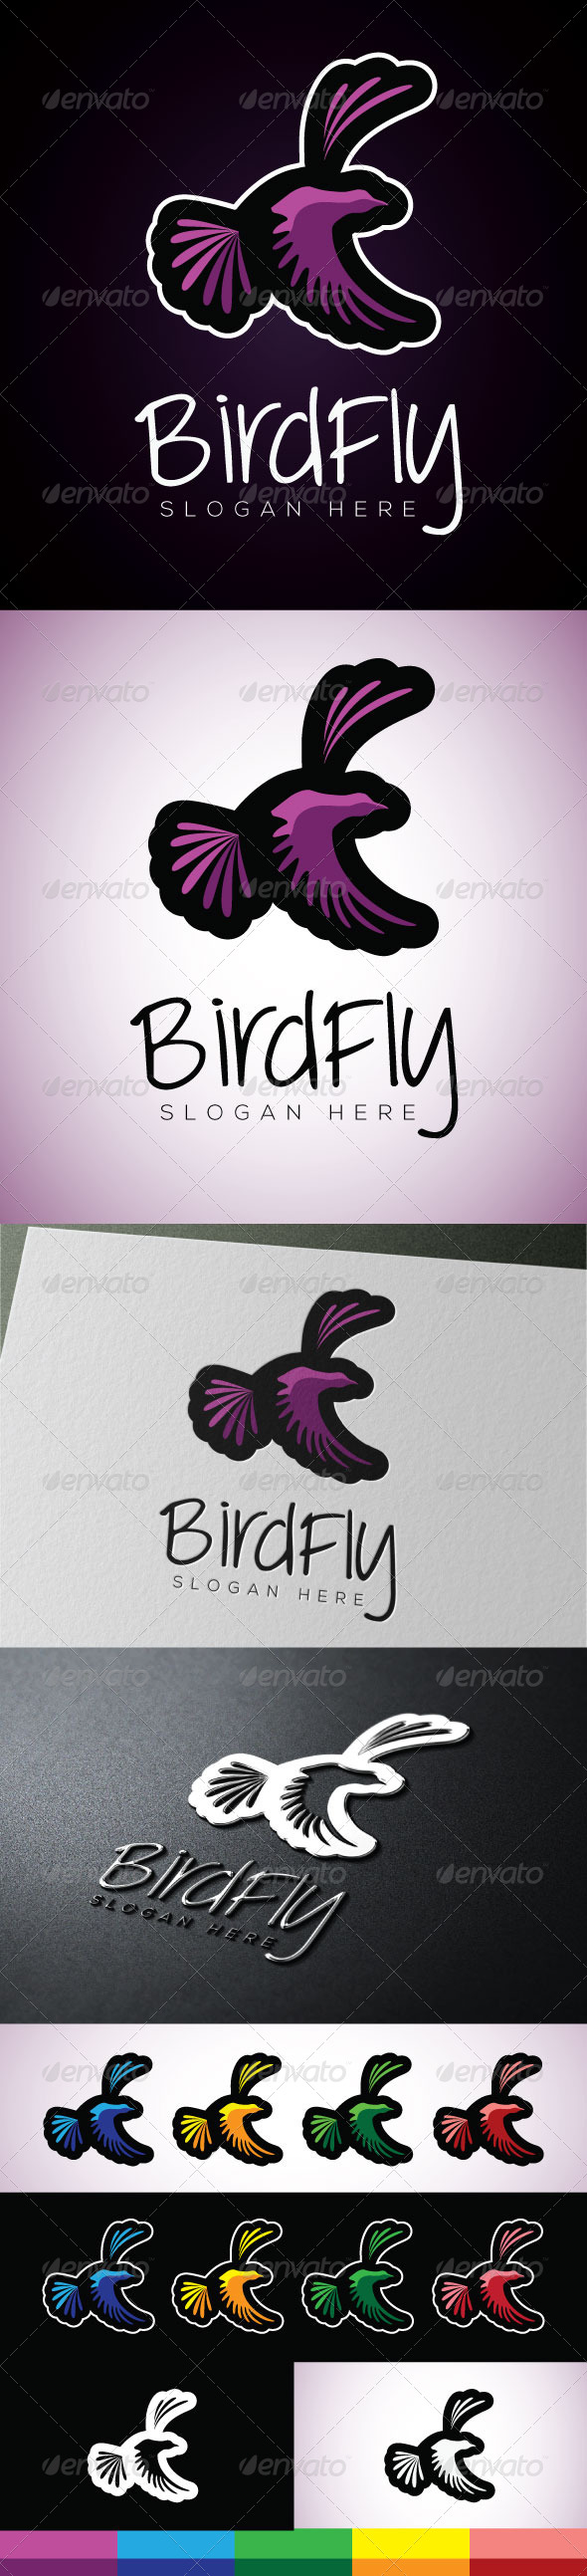 Birdfly - Vector Abstract